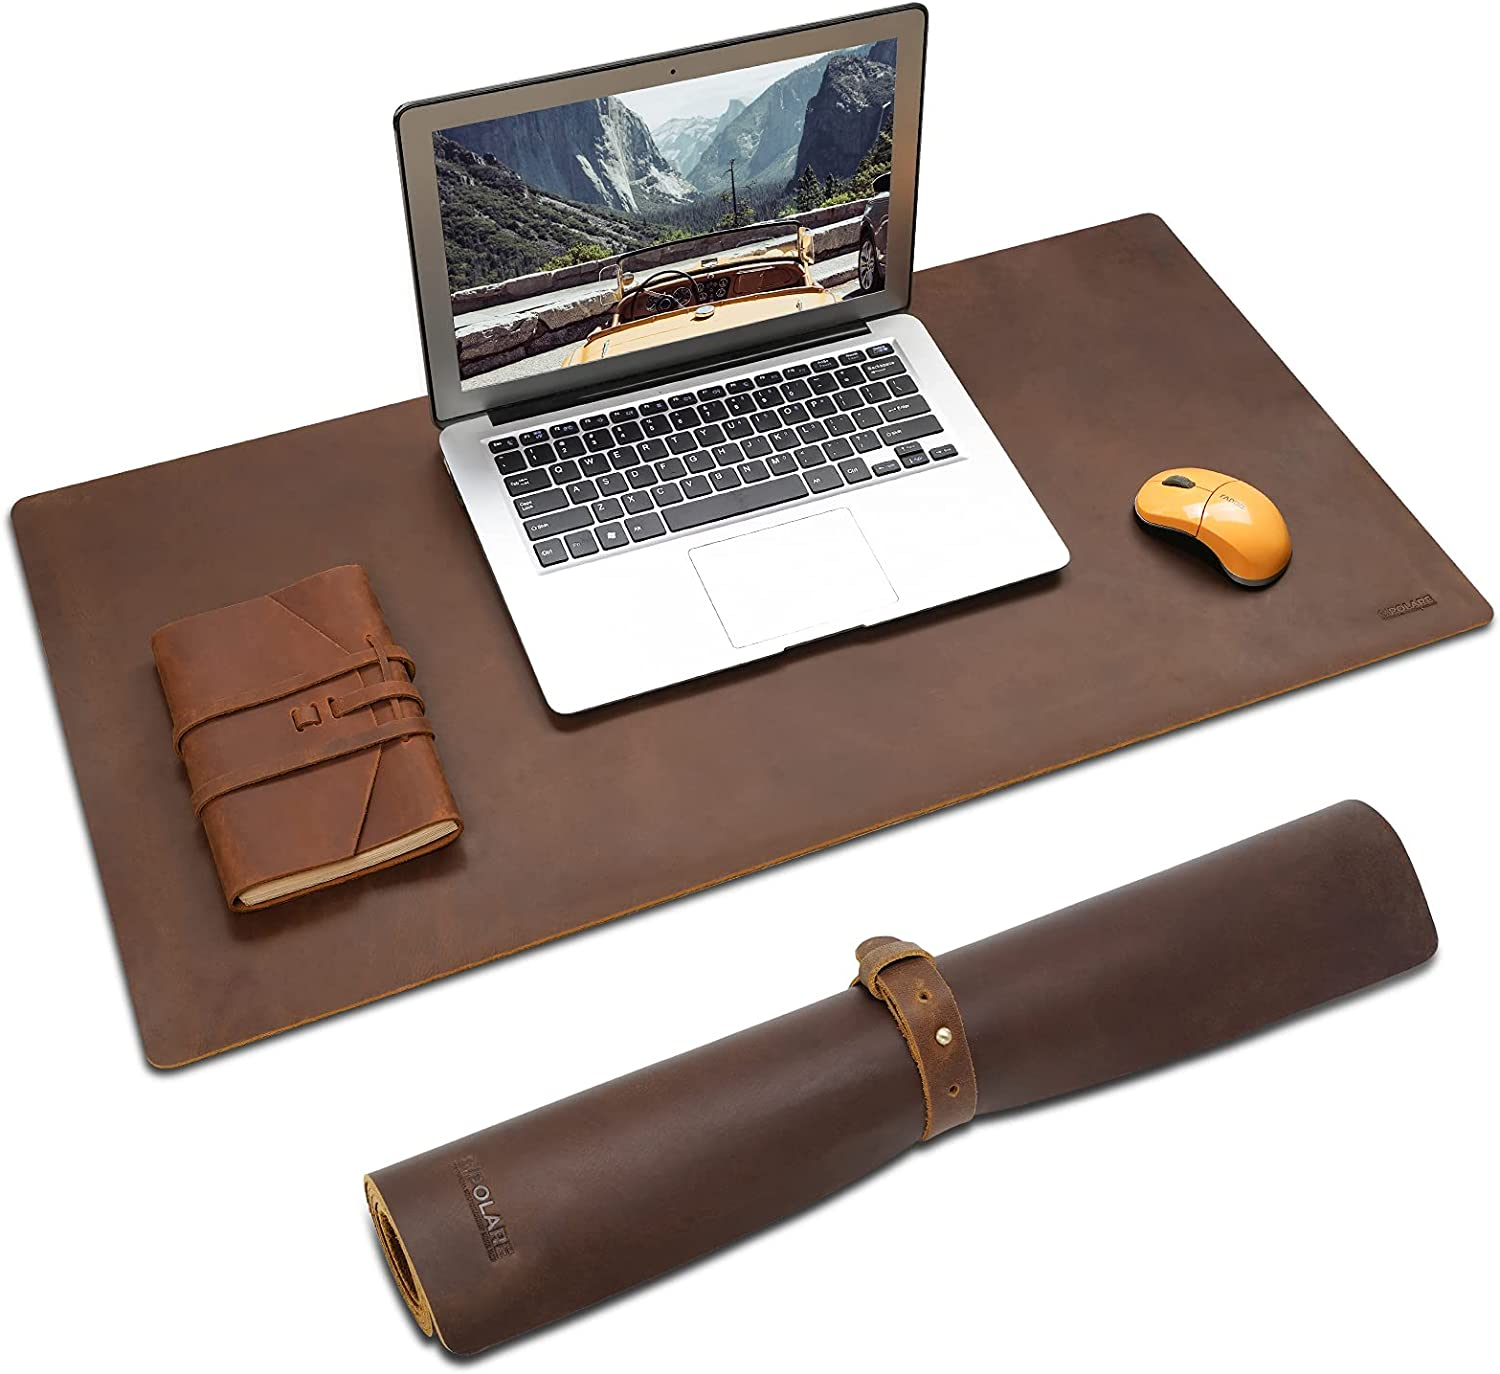 Polare Full Grain Leather Desk Pad Protector 31.5 x 15.7 inch Desktop Blotter Mats for Keyboard and Mouse Non-Slip Desk Writing Pad for Office and Home (Dark Brown)